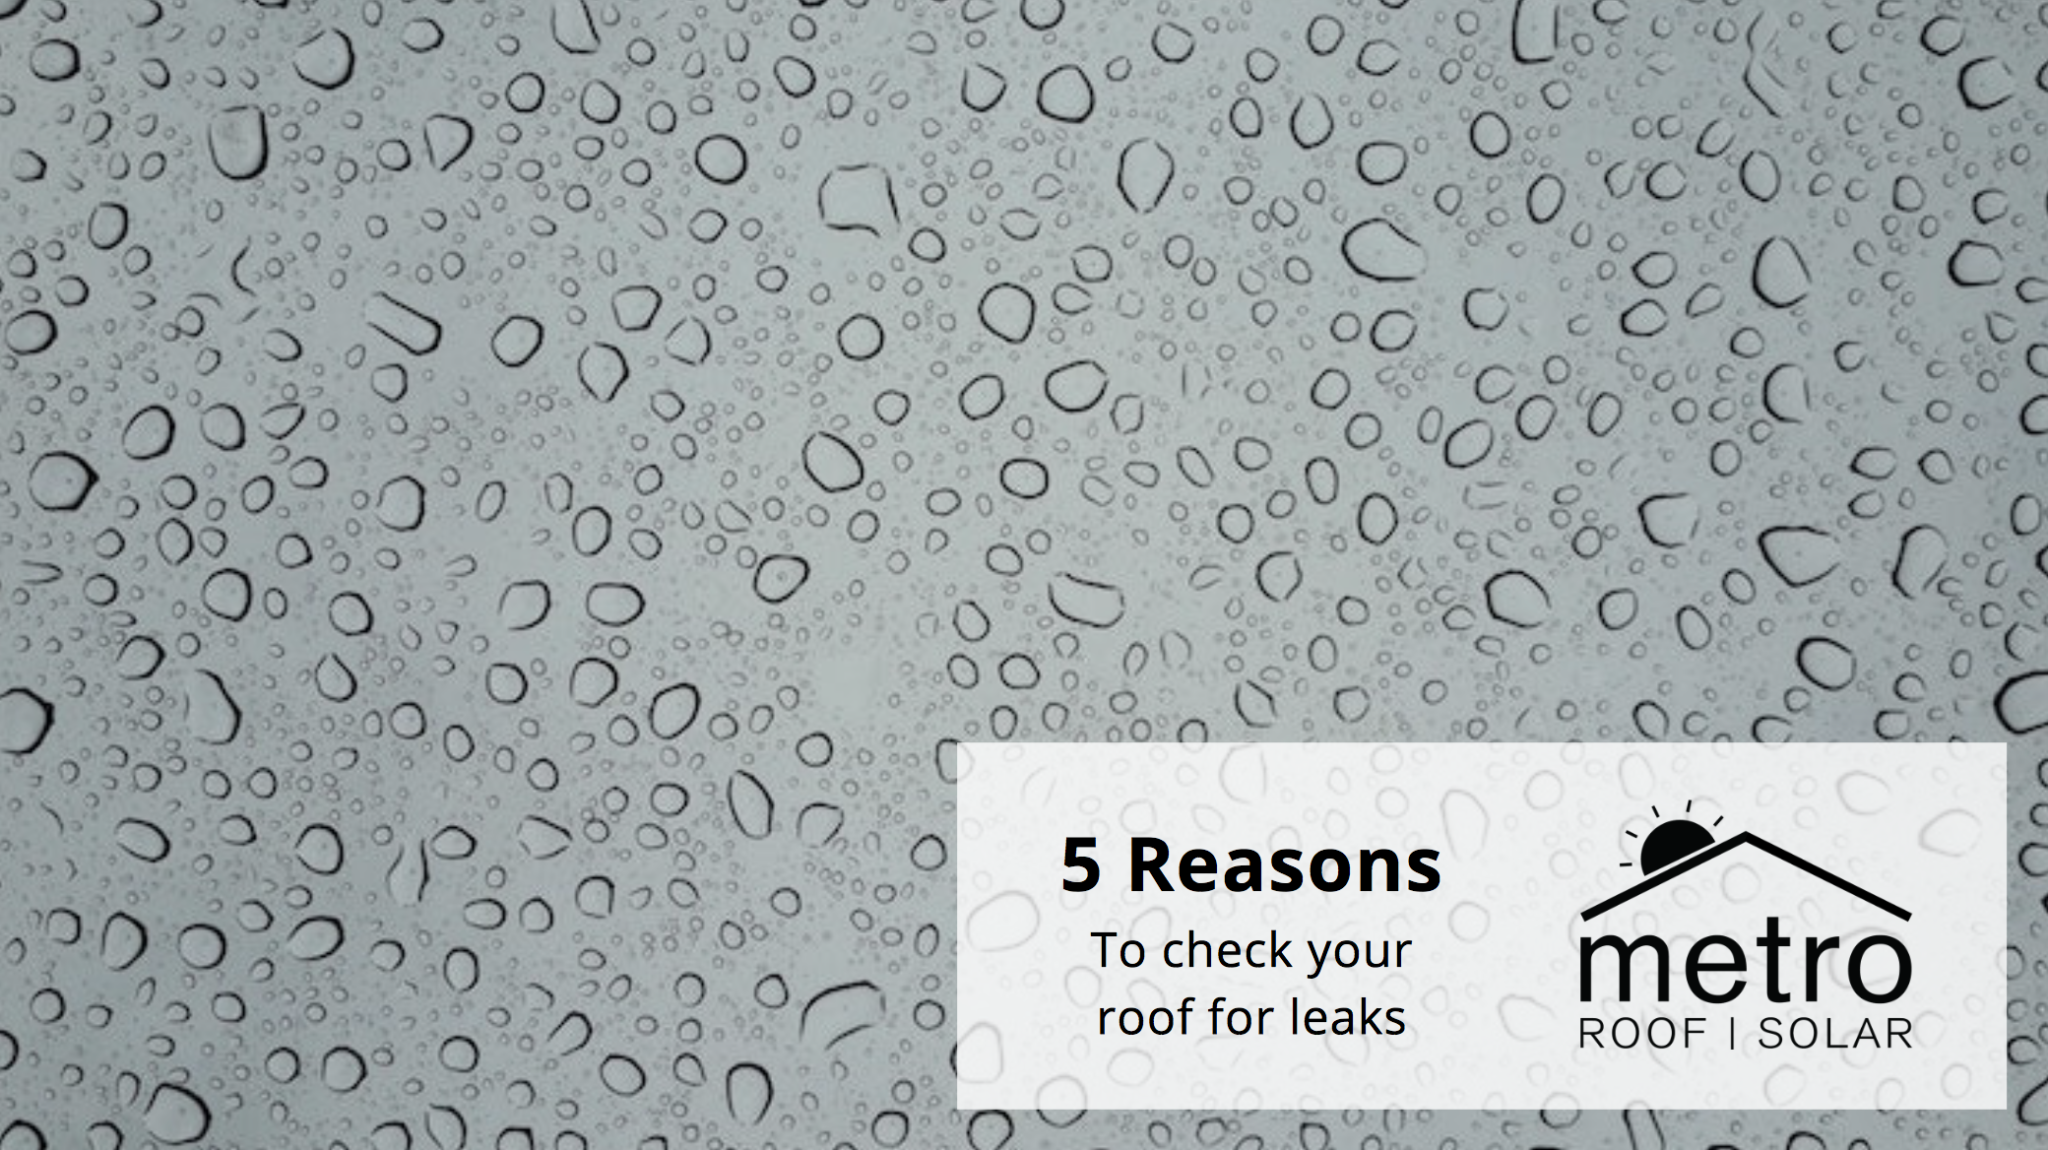 Check for leaks in your roof